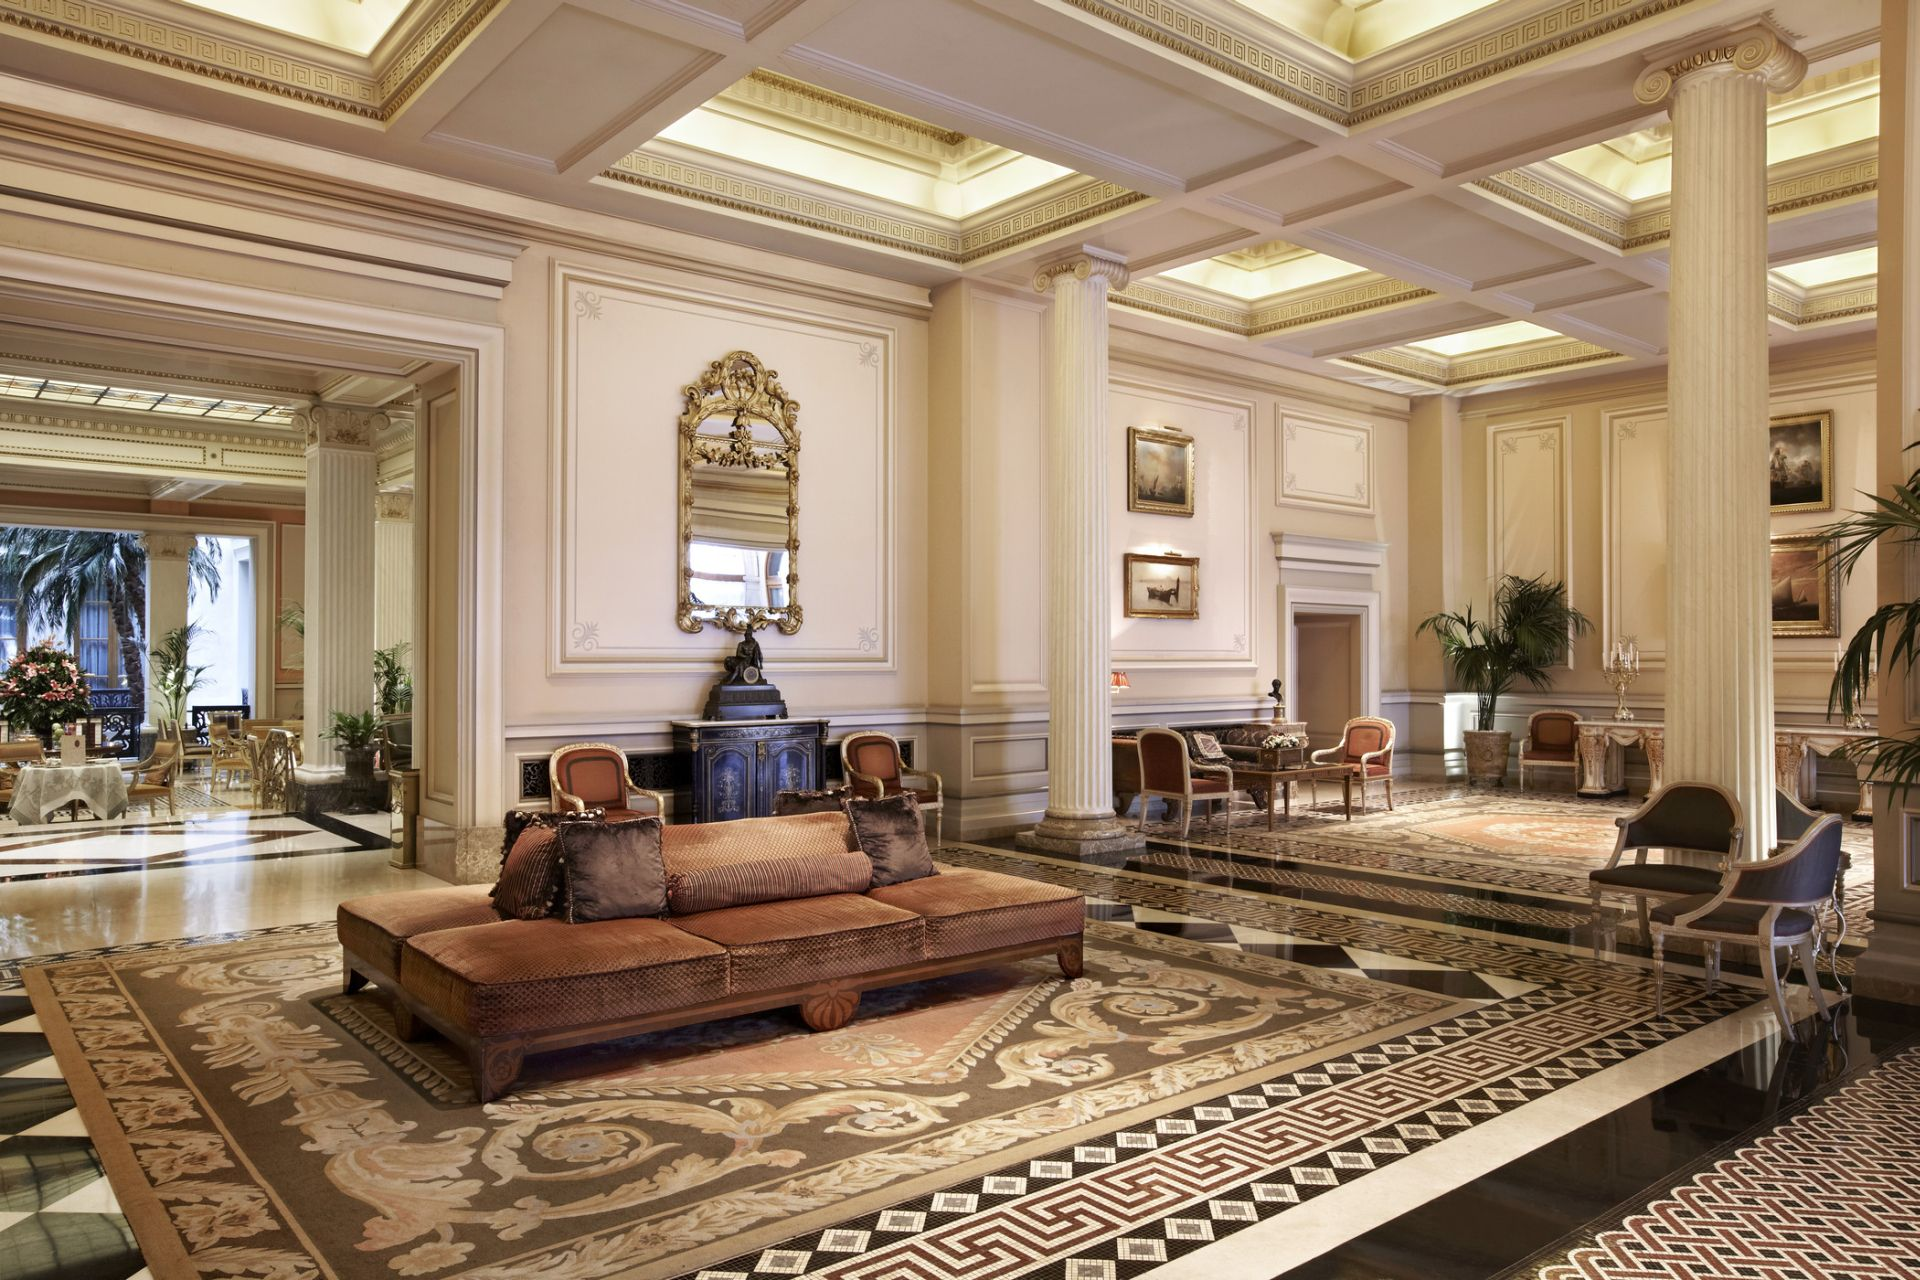 Hotel Grande Bretagne A Luxury Collection Athens Photo Gallery Exterior View Lobby Alexander